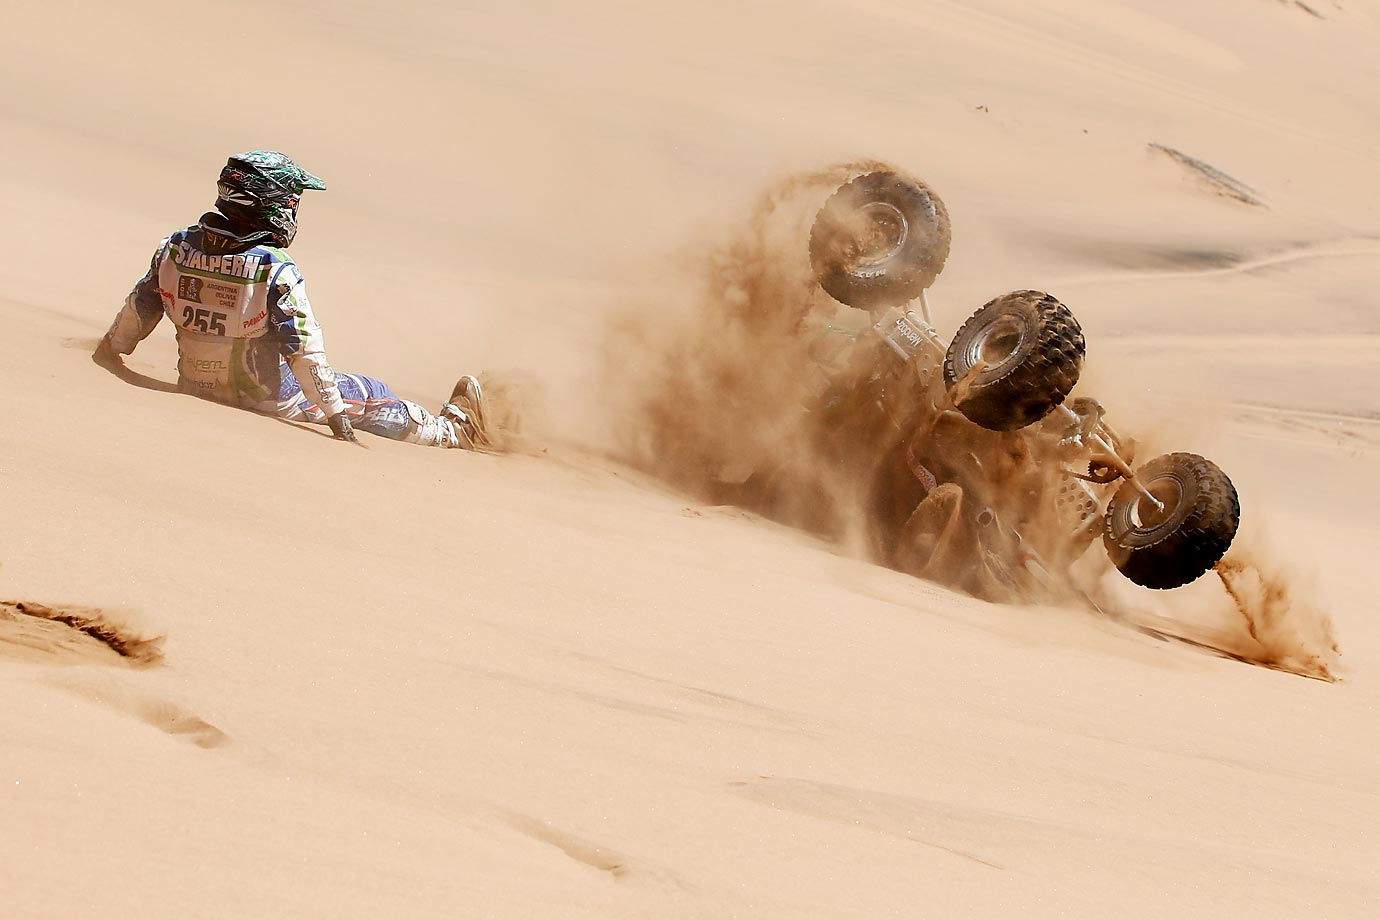 Sebastian Halpern chases his quad as it rolls down the sand dune at the Dakar Rally.